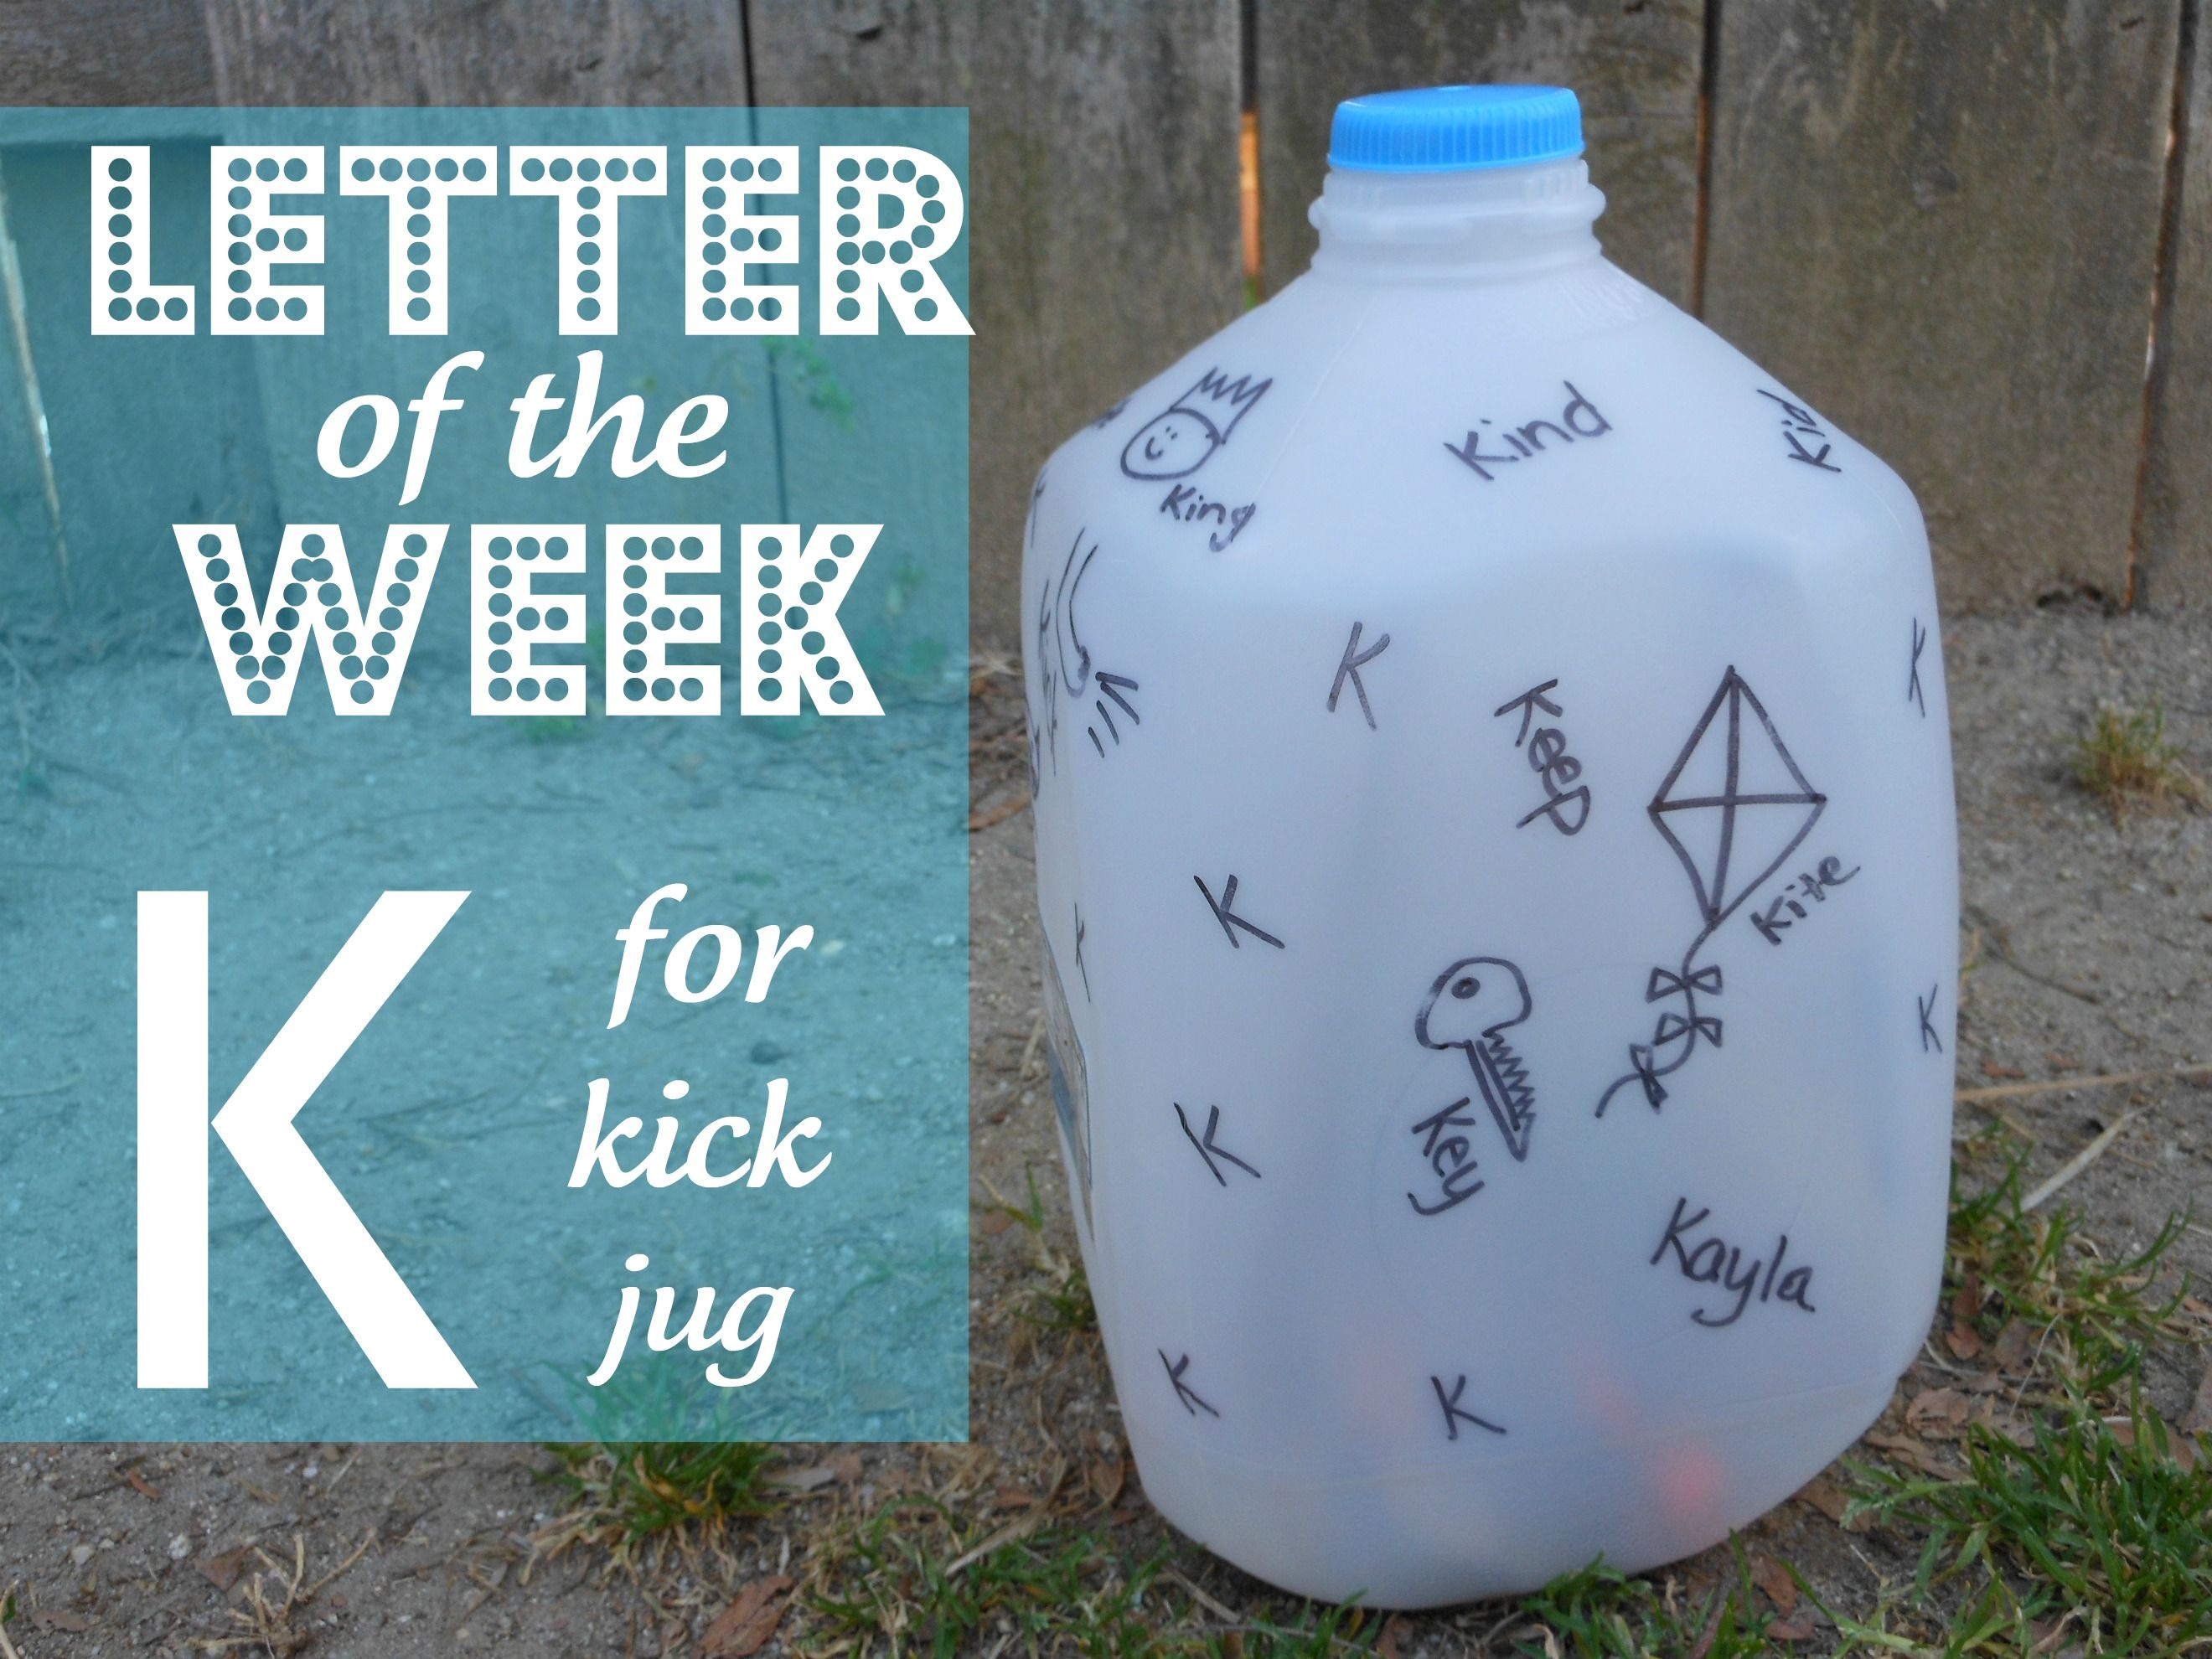 K For Kick Jug Activity For Learning Letters And Words